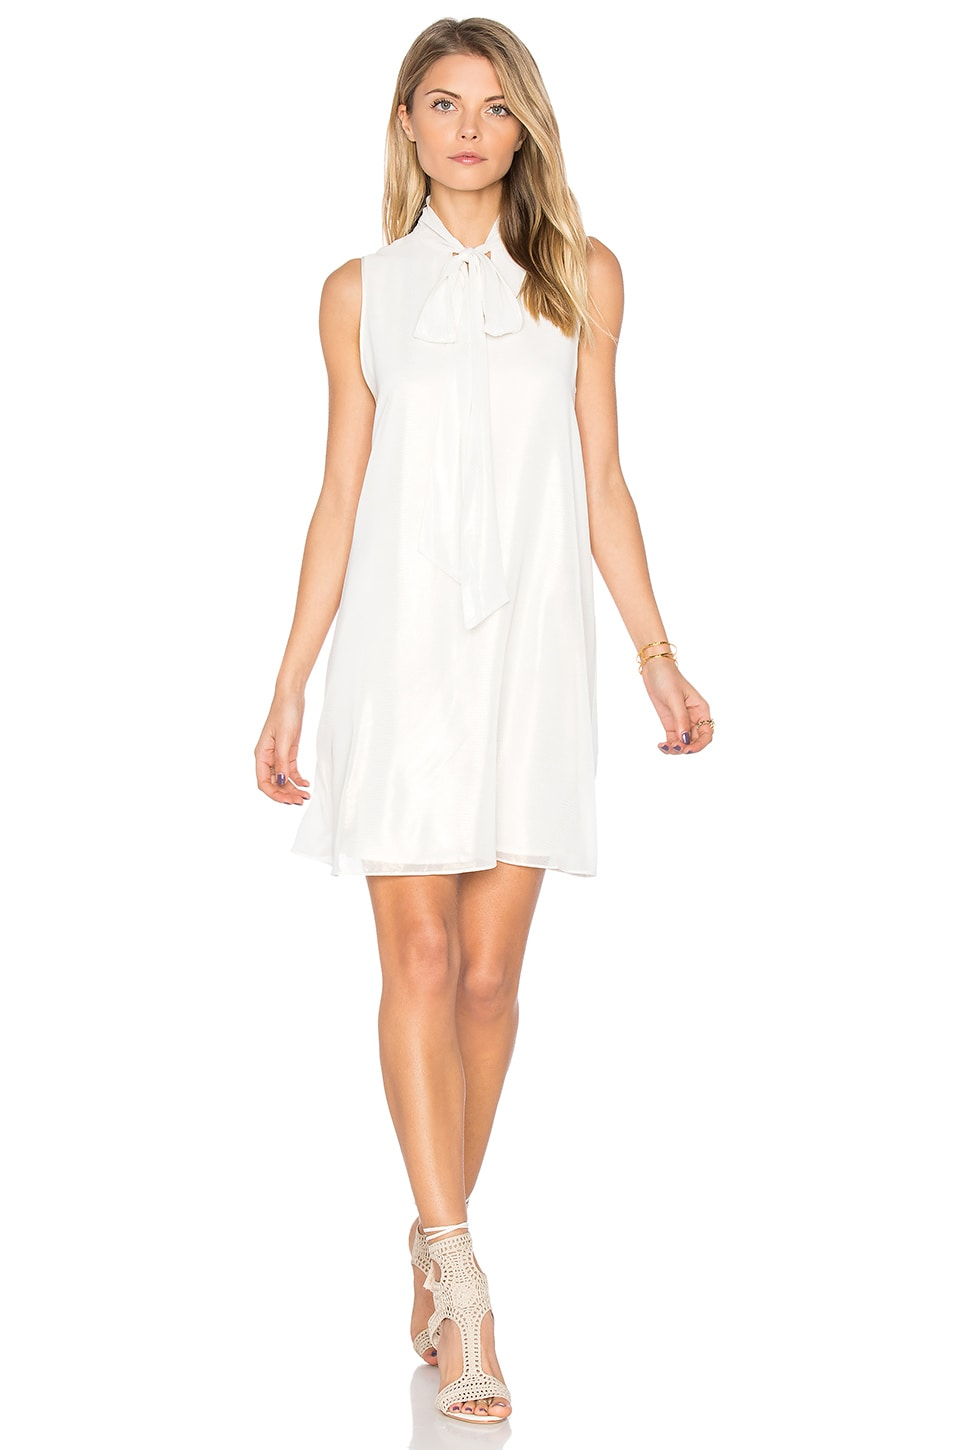 Tie Neck Dress by BCBGeneration